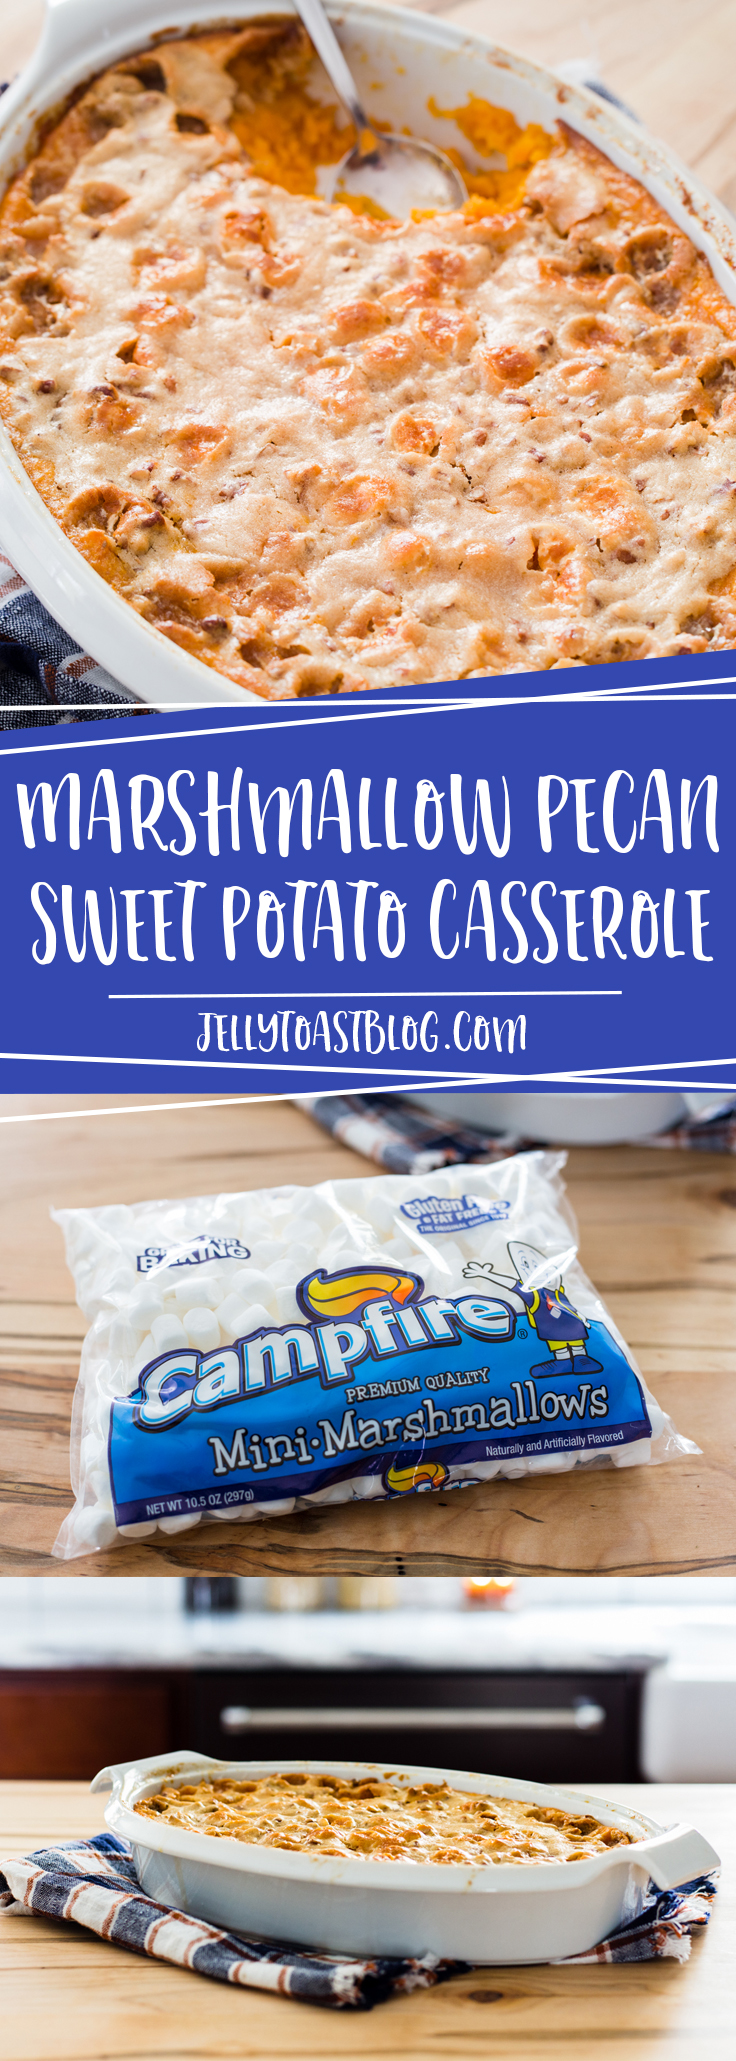 Marshmallow Pecan Sweet Potato Casserole from Jelly Toast jellytoastblog.com with Campfire Mini Marshmallows